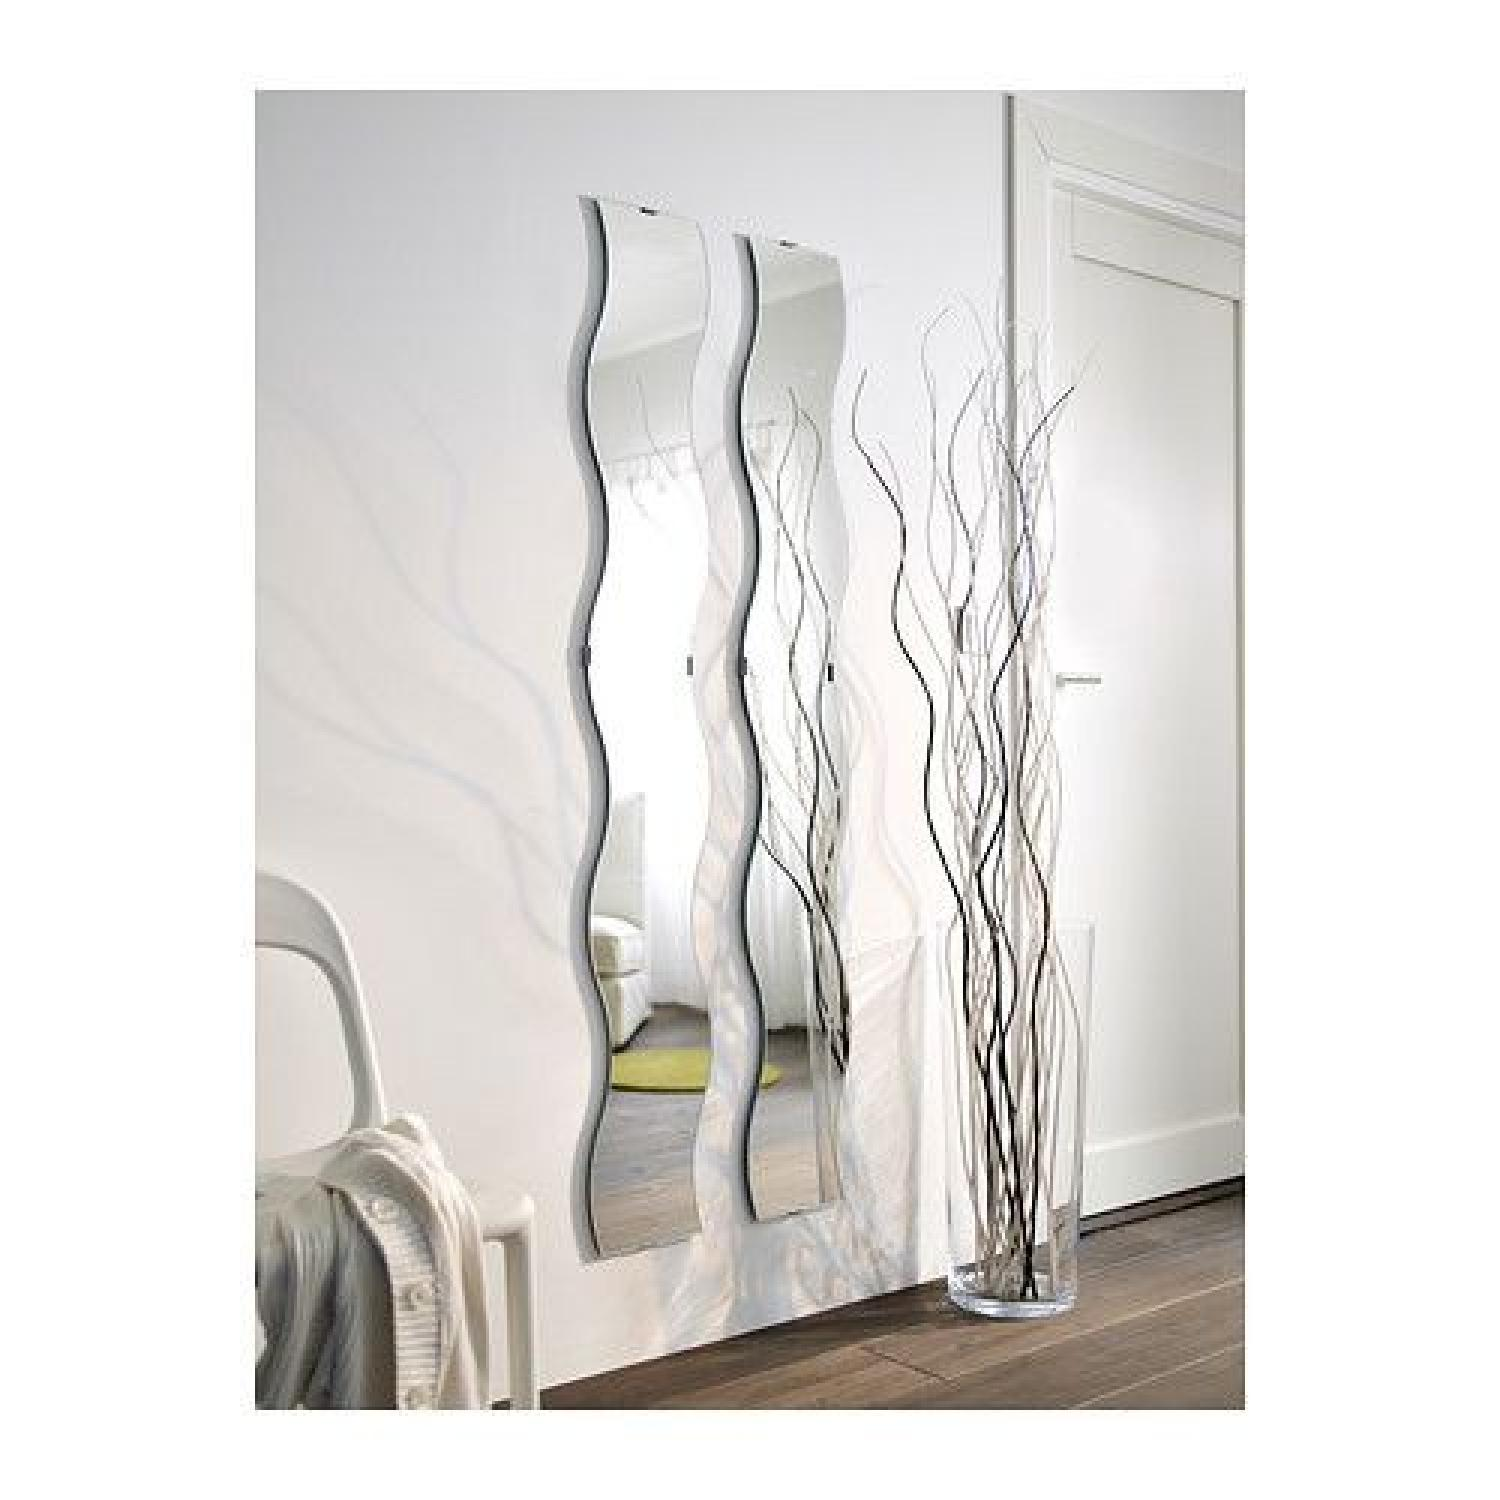 Krabb Carved Wall Mirrors - image-4